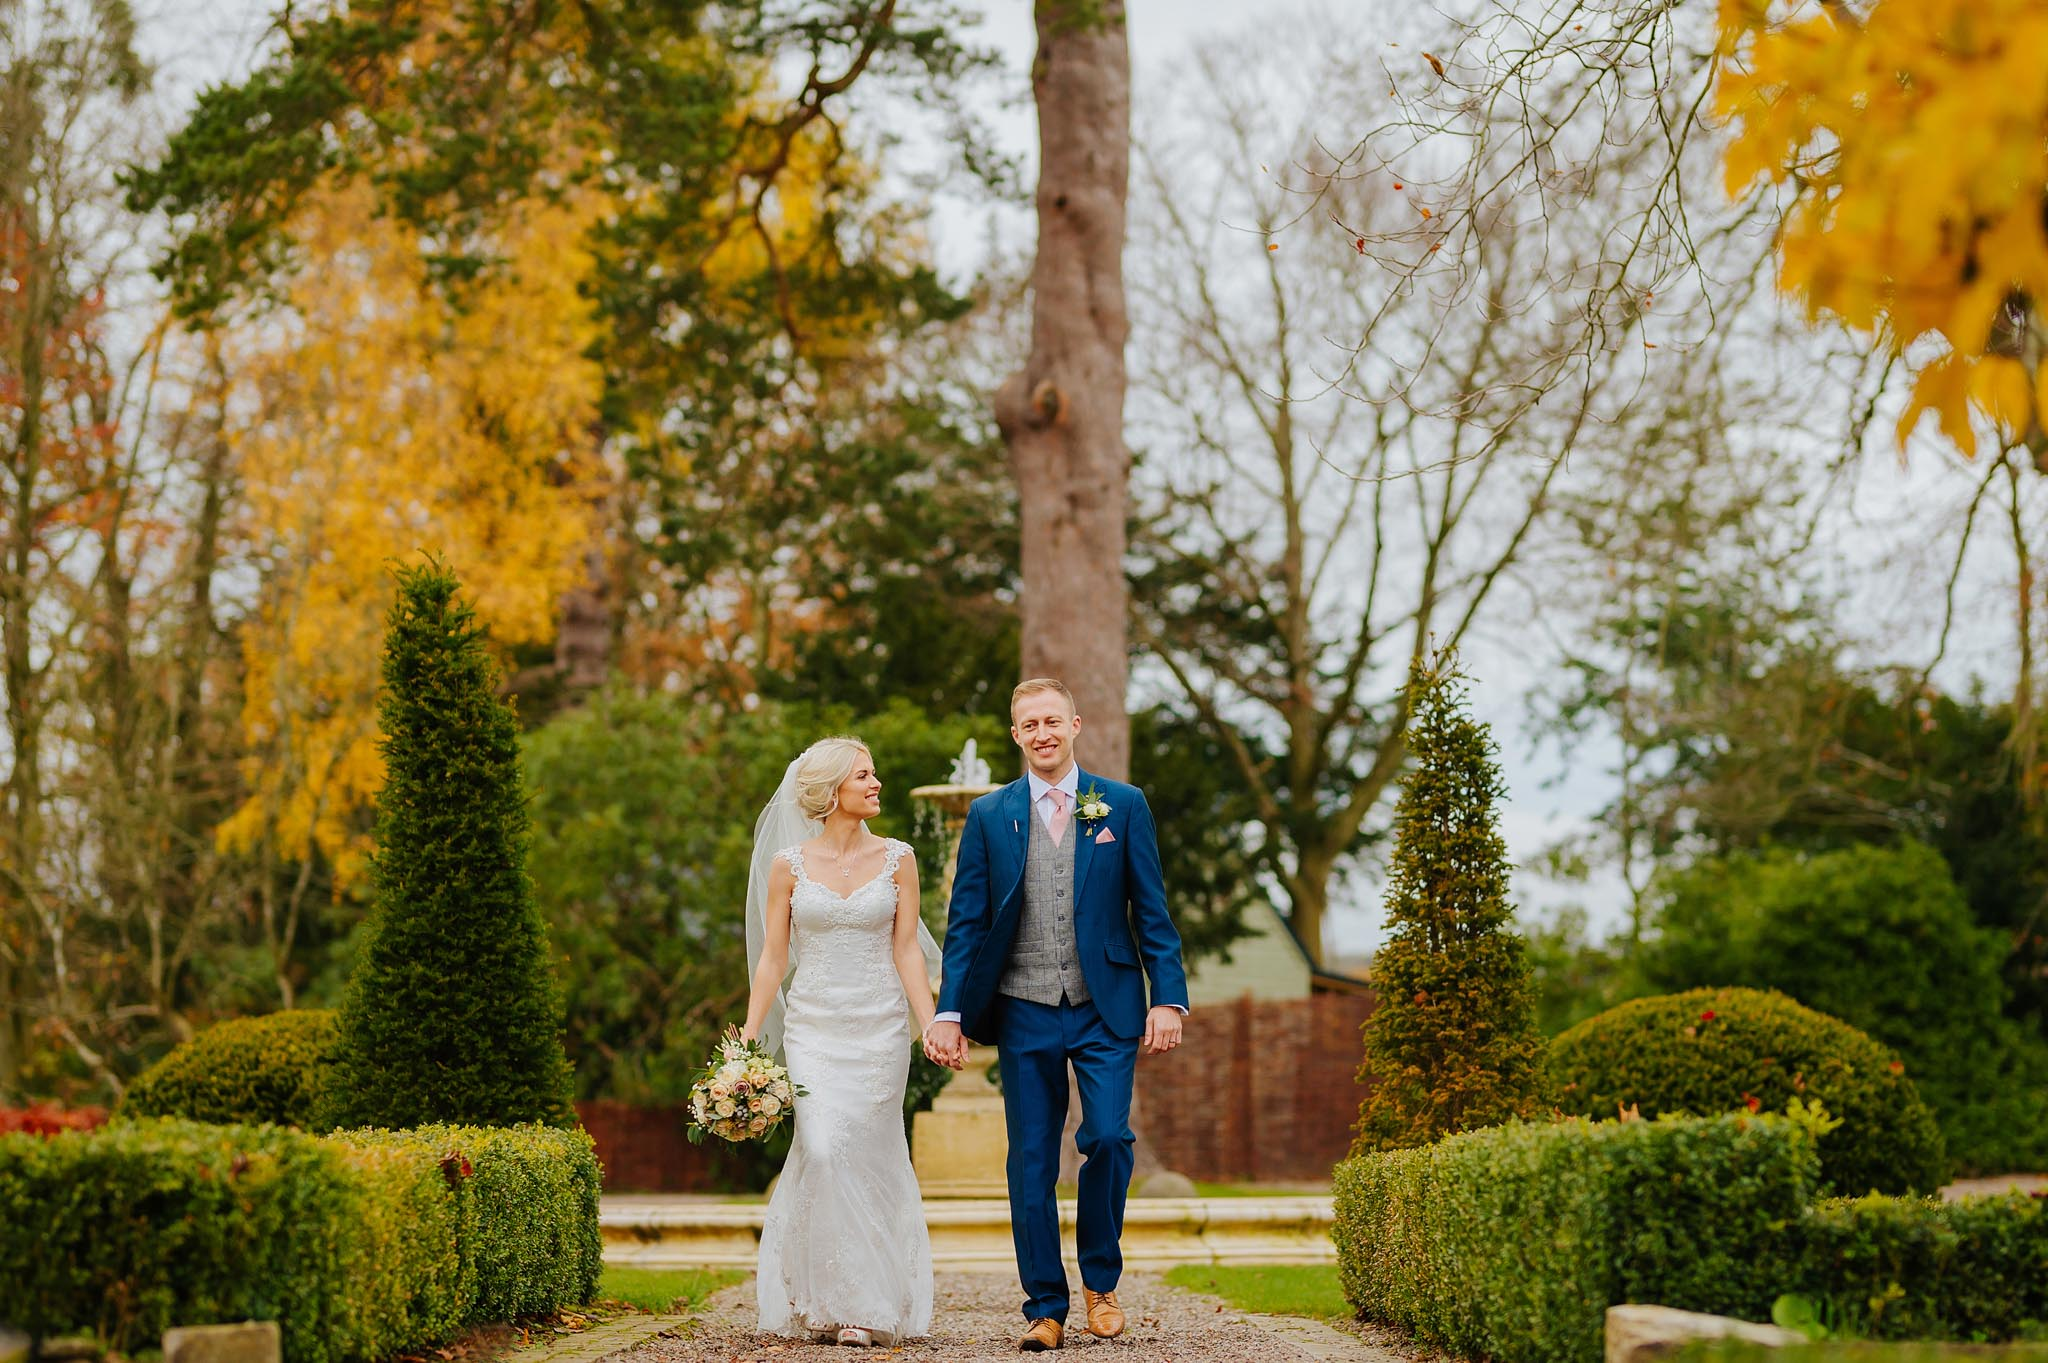 lemore manor wedding herefordshire 103 - Lemore Manor wedding, Herefordshire - West Midlands | Sadie + Ken